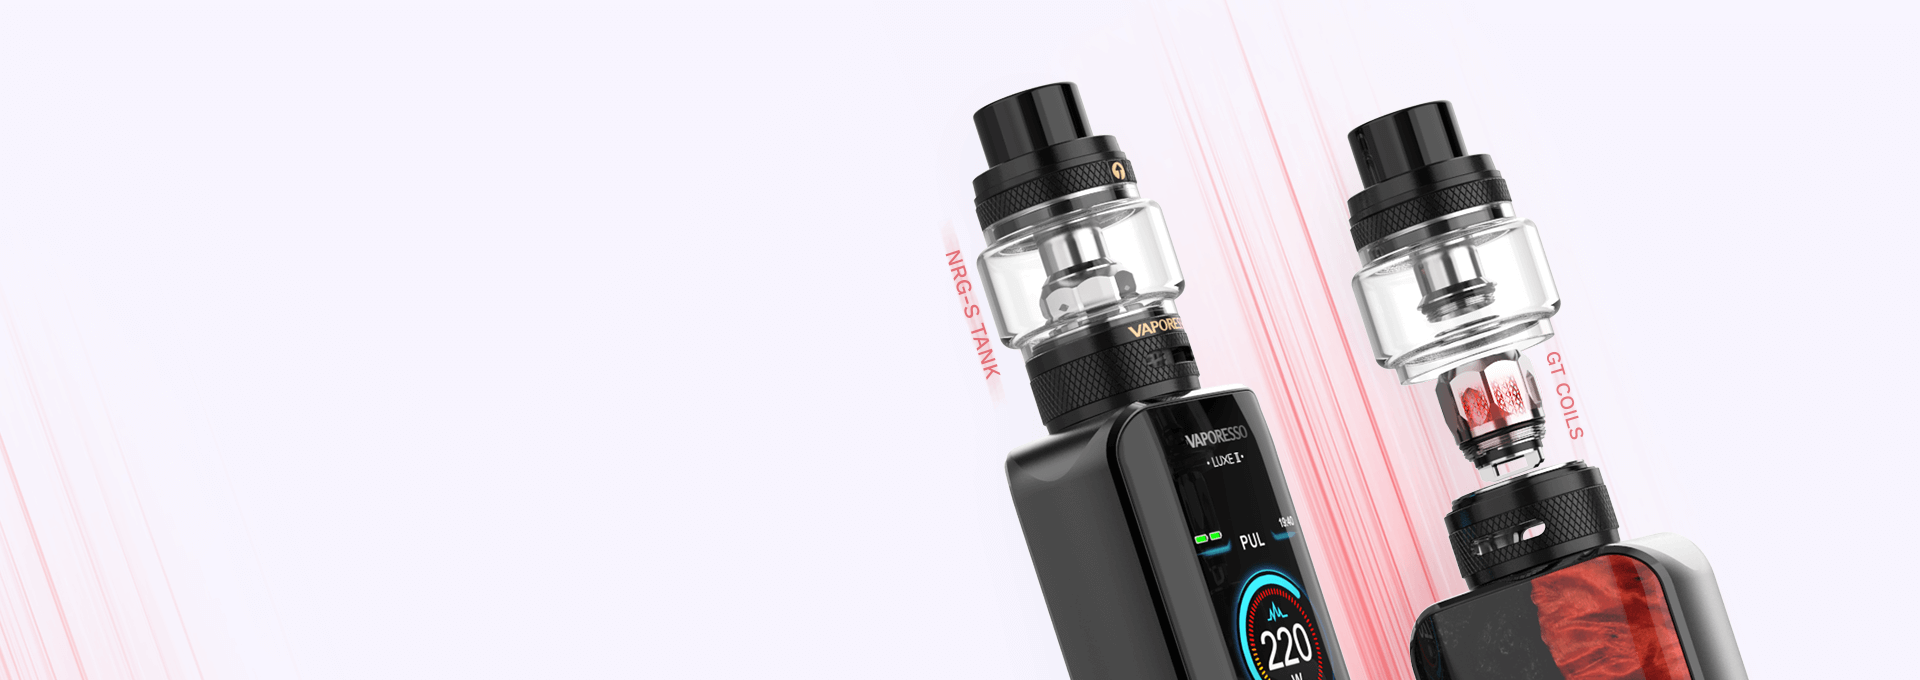 https://www.vaporesso.com/hubfs/imgs/product_img/luxe_2/pc/pc-hl-tank.png